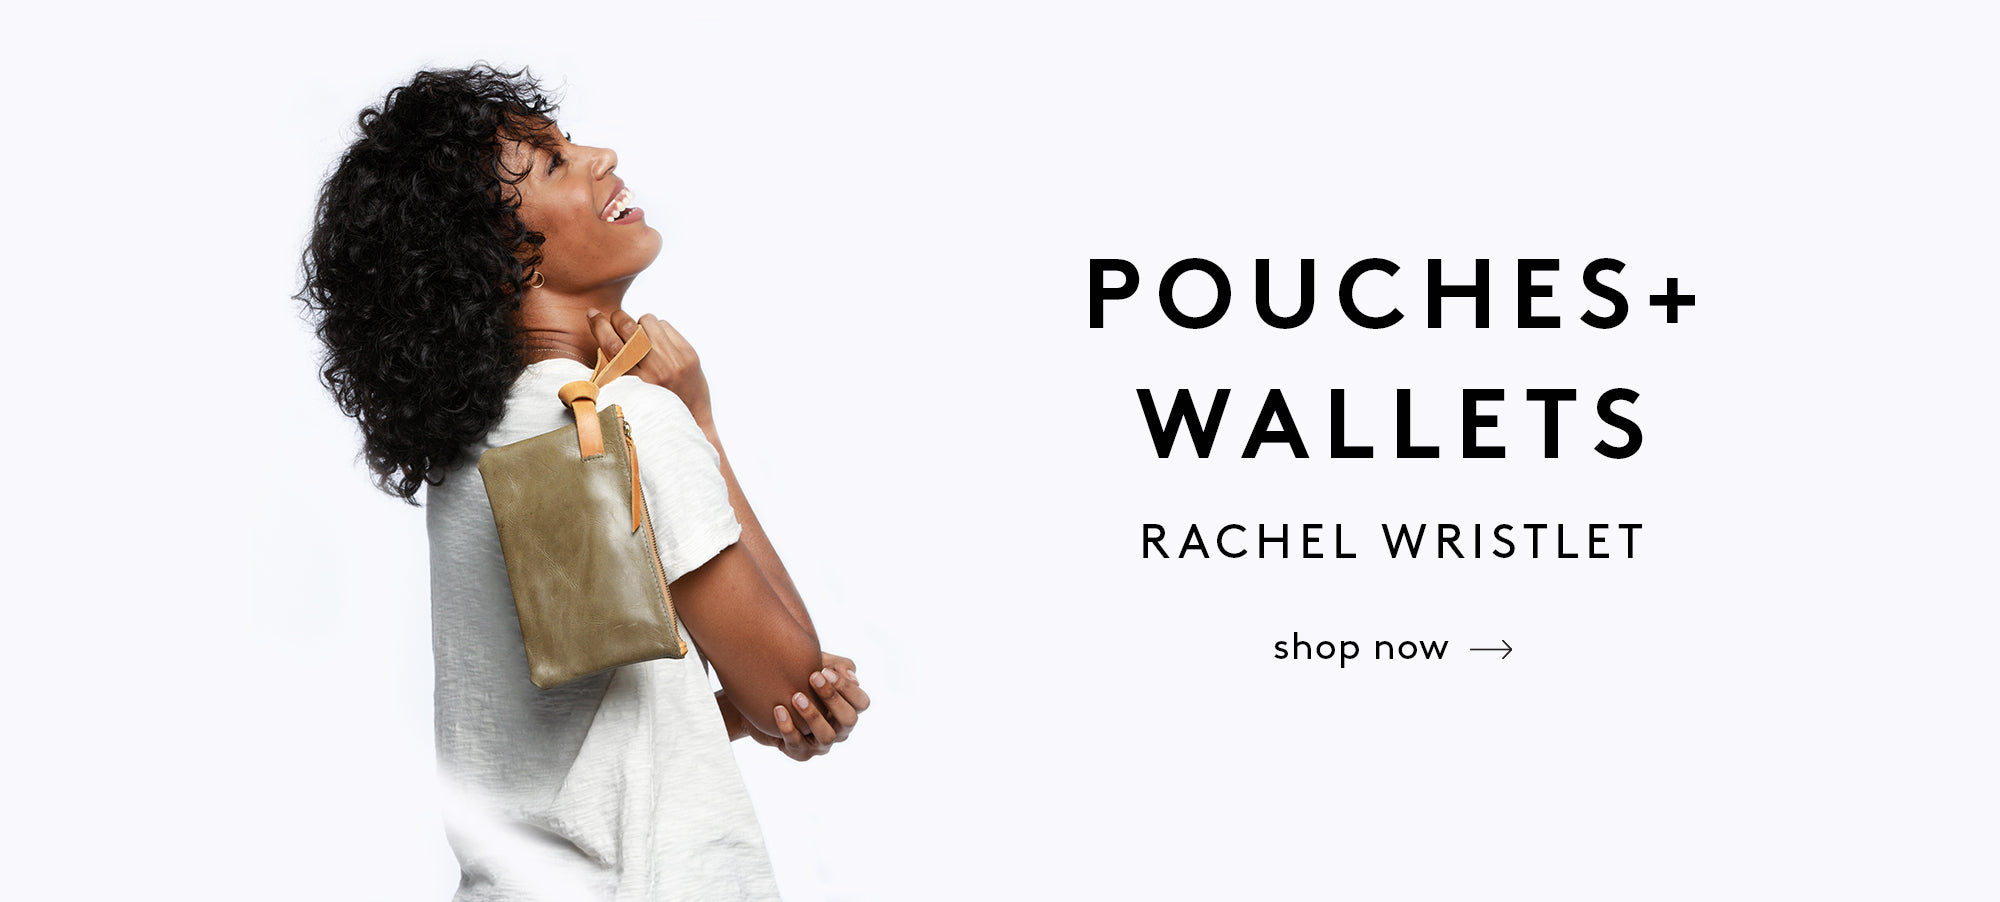 Pouches and Wallets